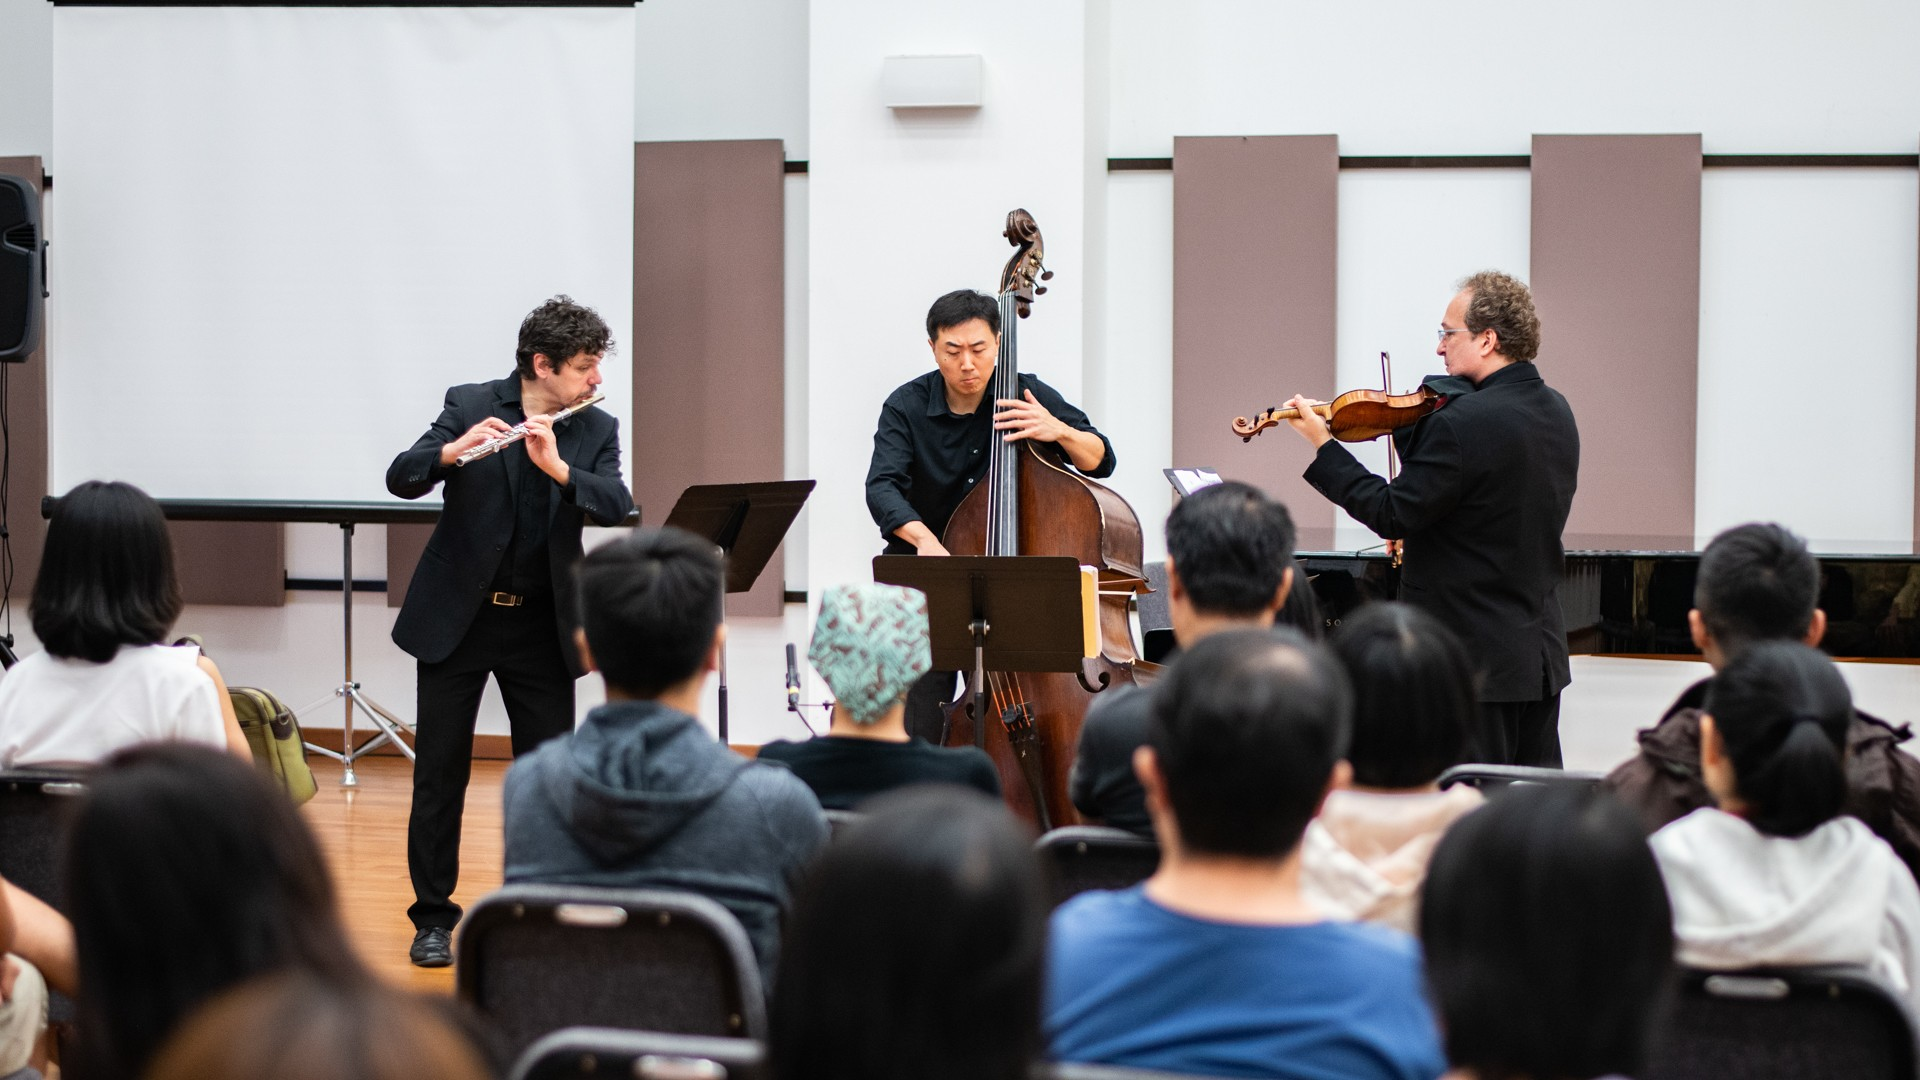 2020-01-07 Yong Siew Toh Conservatory of Music and The Tianjin Juilliard School to deepen collaboration